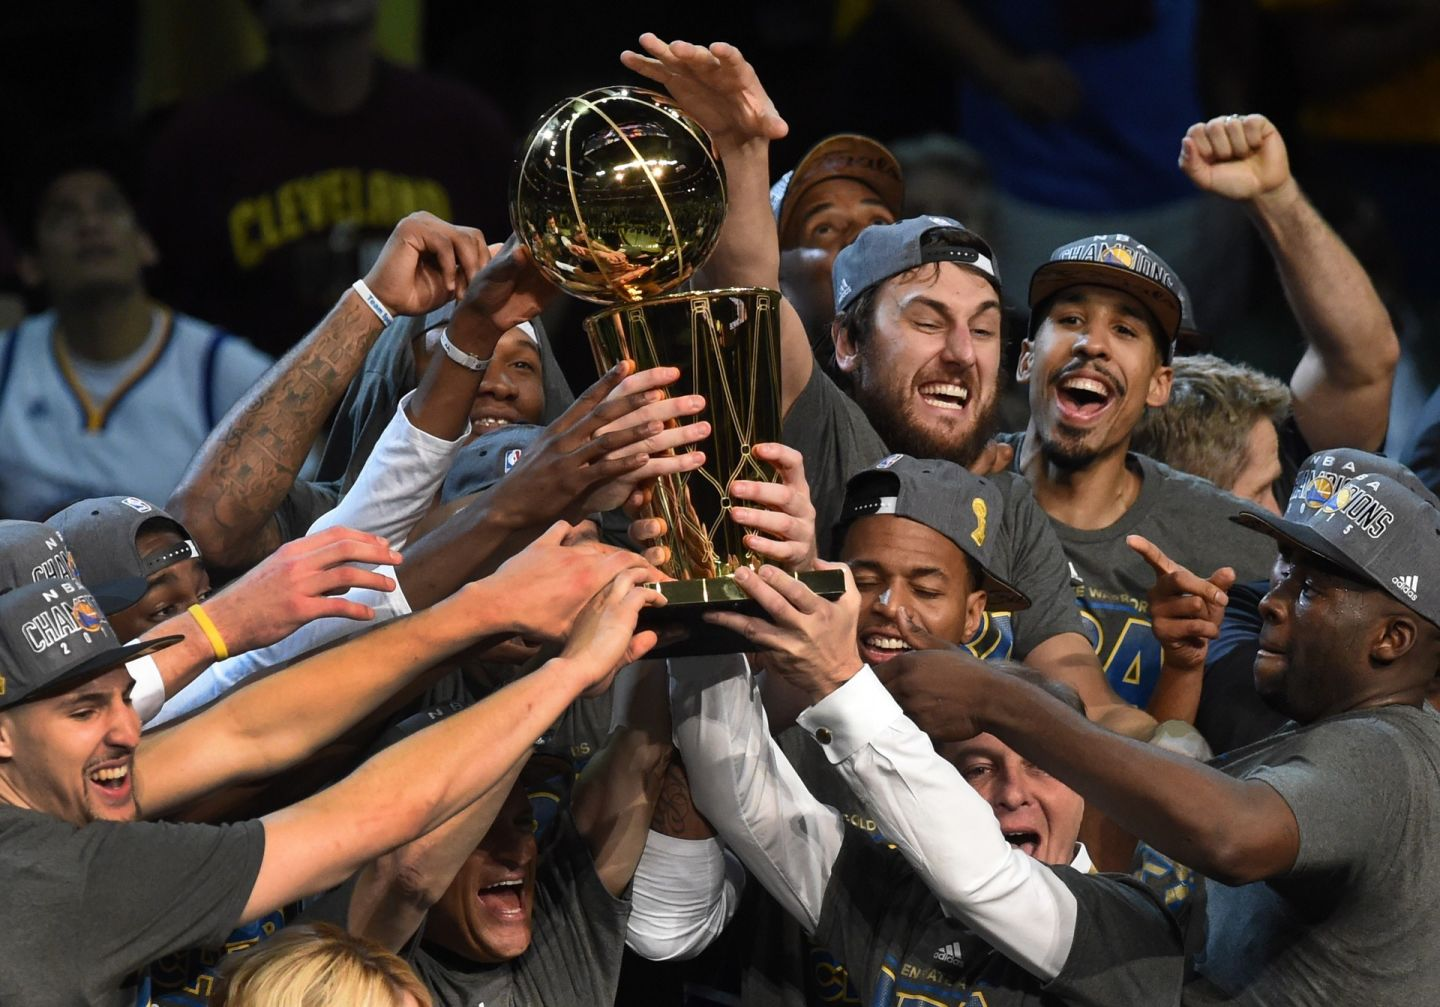 The Warriors celebrate their 2015 NBA Championship. (Timothy A. Clary/AFP/Getty Images)